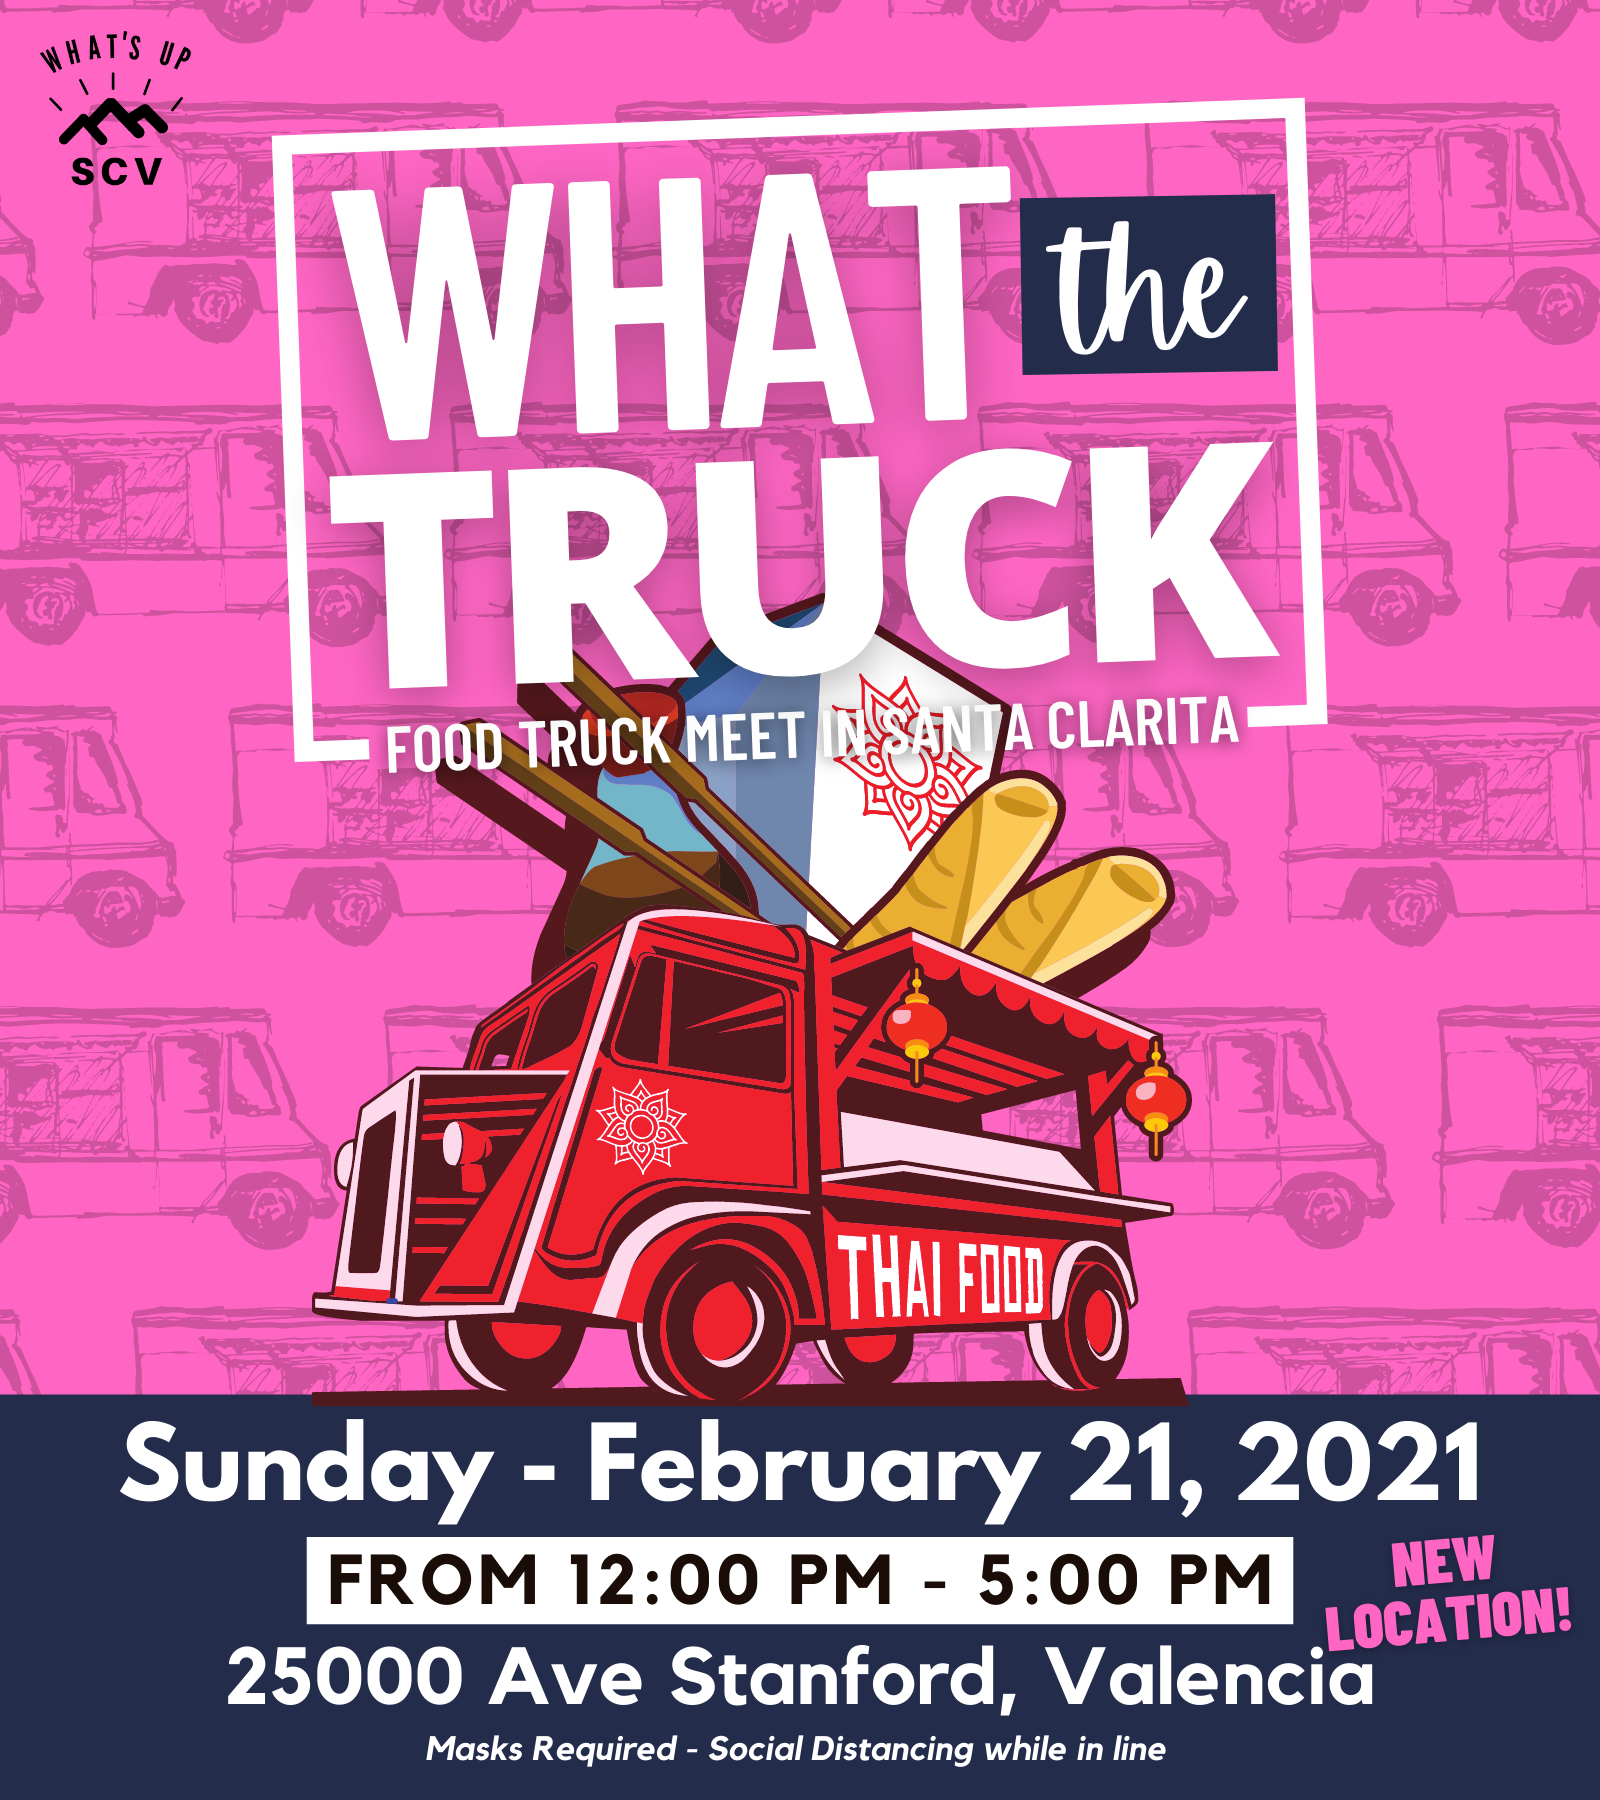 WhatsupSCV Food Truck Event